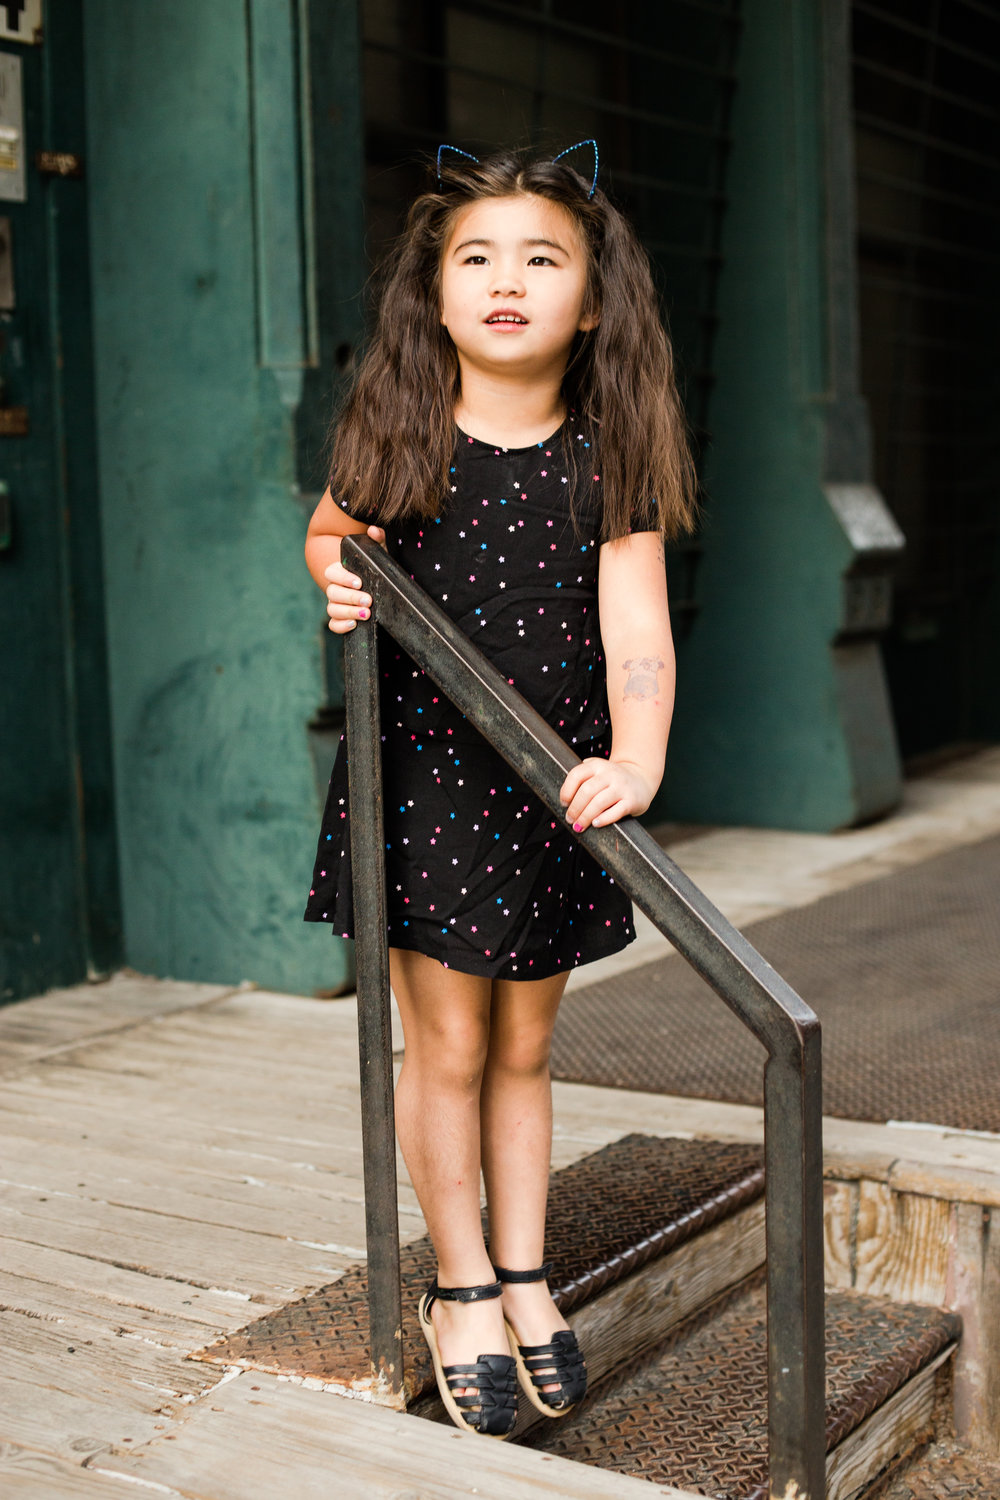 lissiephoto_loomis_nyc_family_photography31.JPG